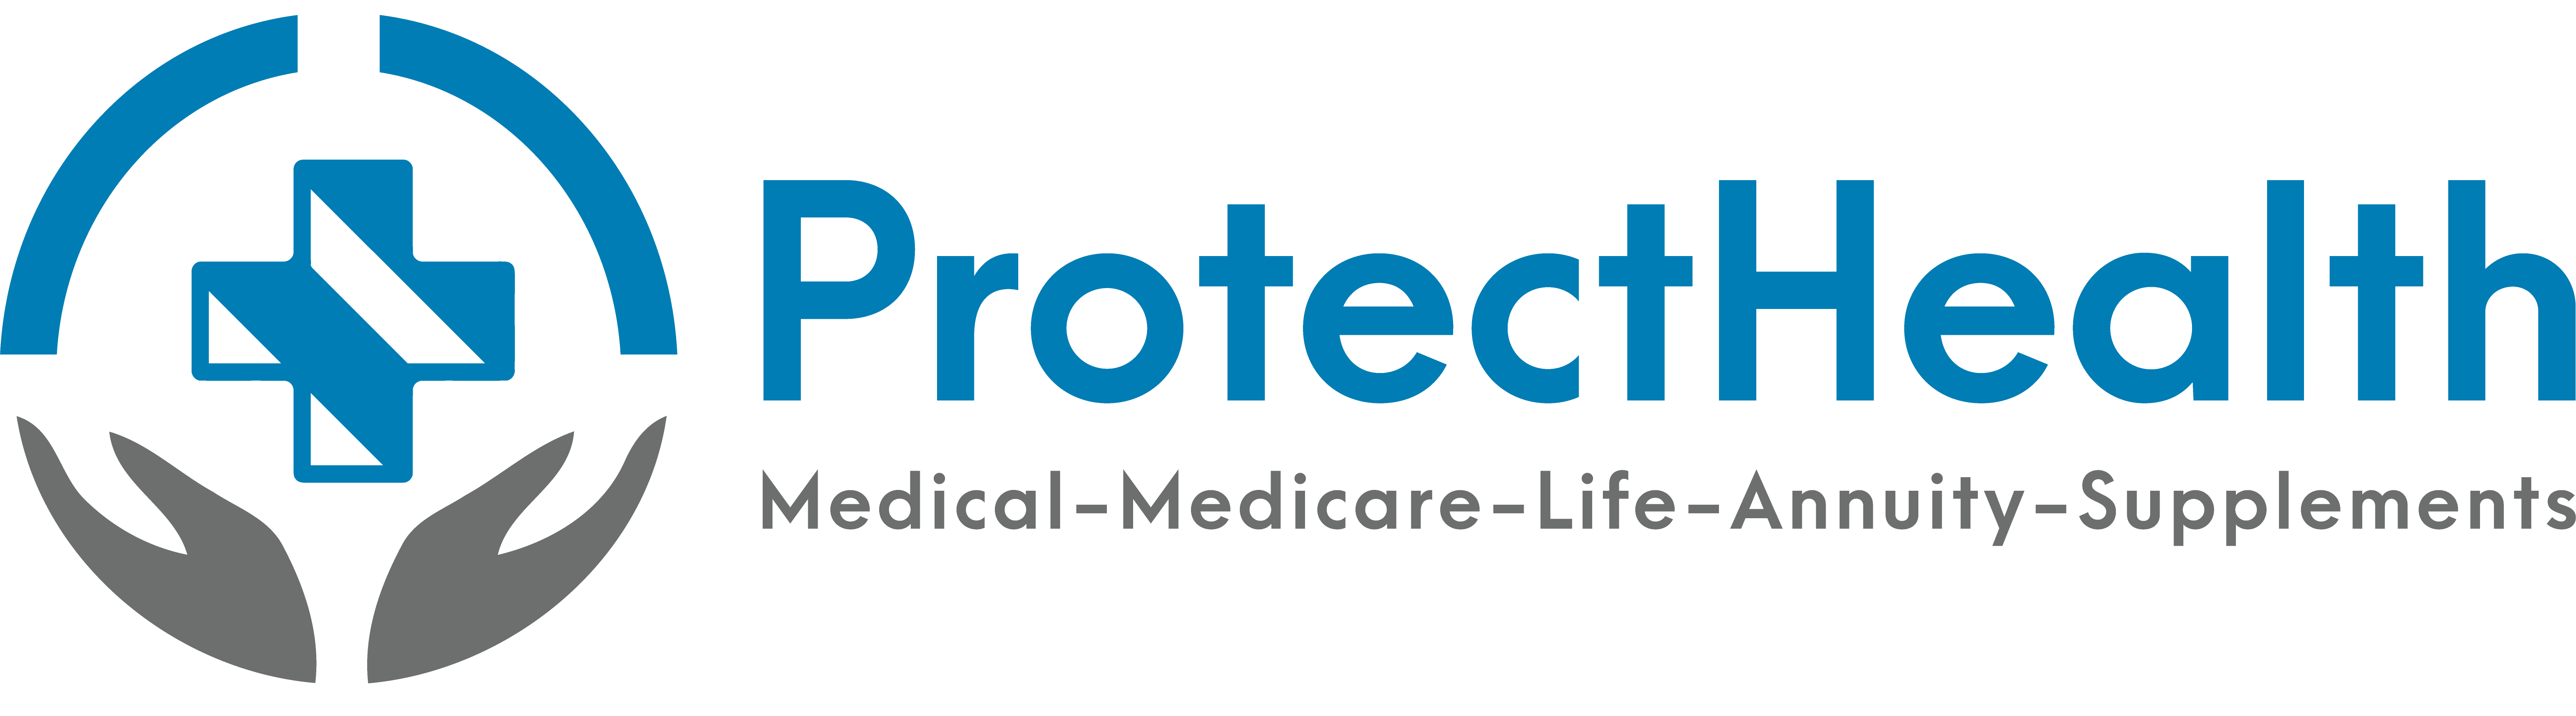 ProtectHealth